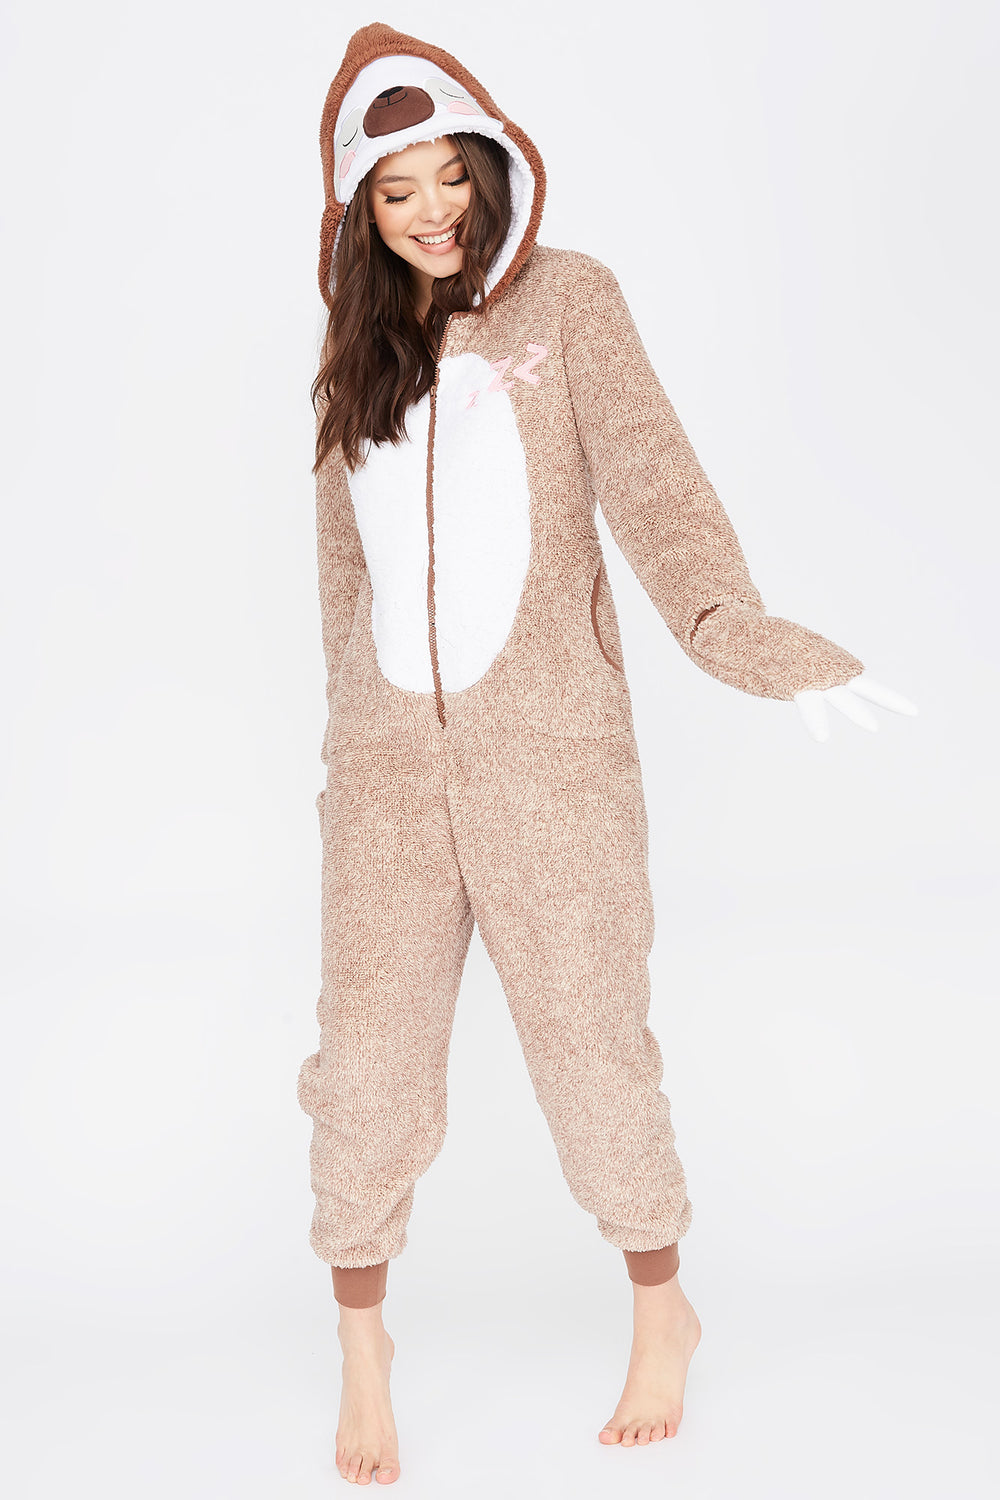 Soft Sloth Zip-Up Onesie Brown